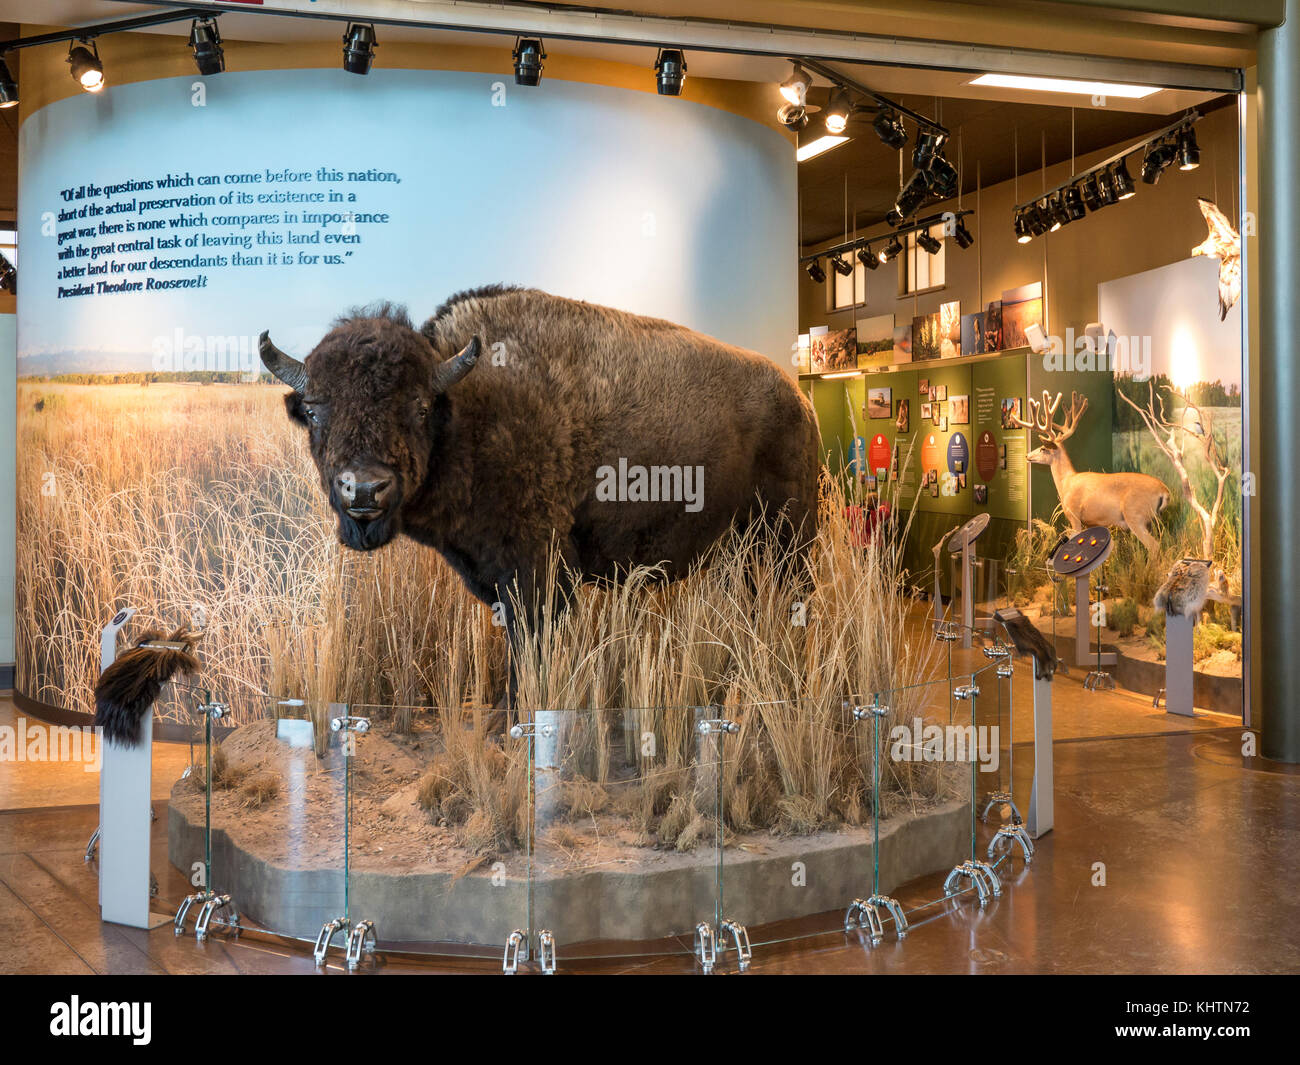 Displays inside the visitor center, Rocky Mountain Arsenal National Wildlife Refuge, Commerce City, Colorado. - Stock Image